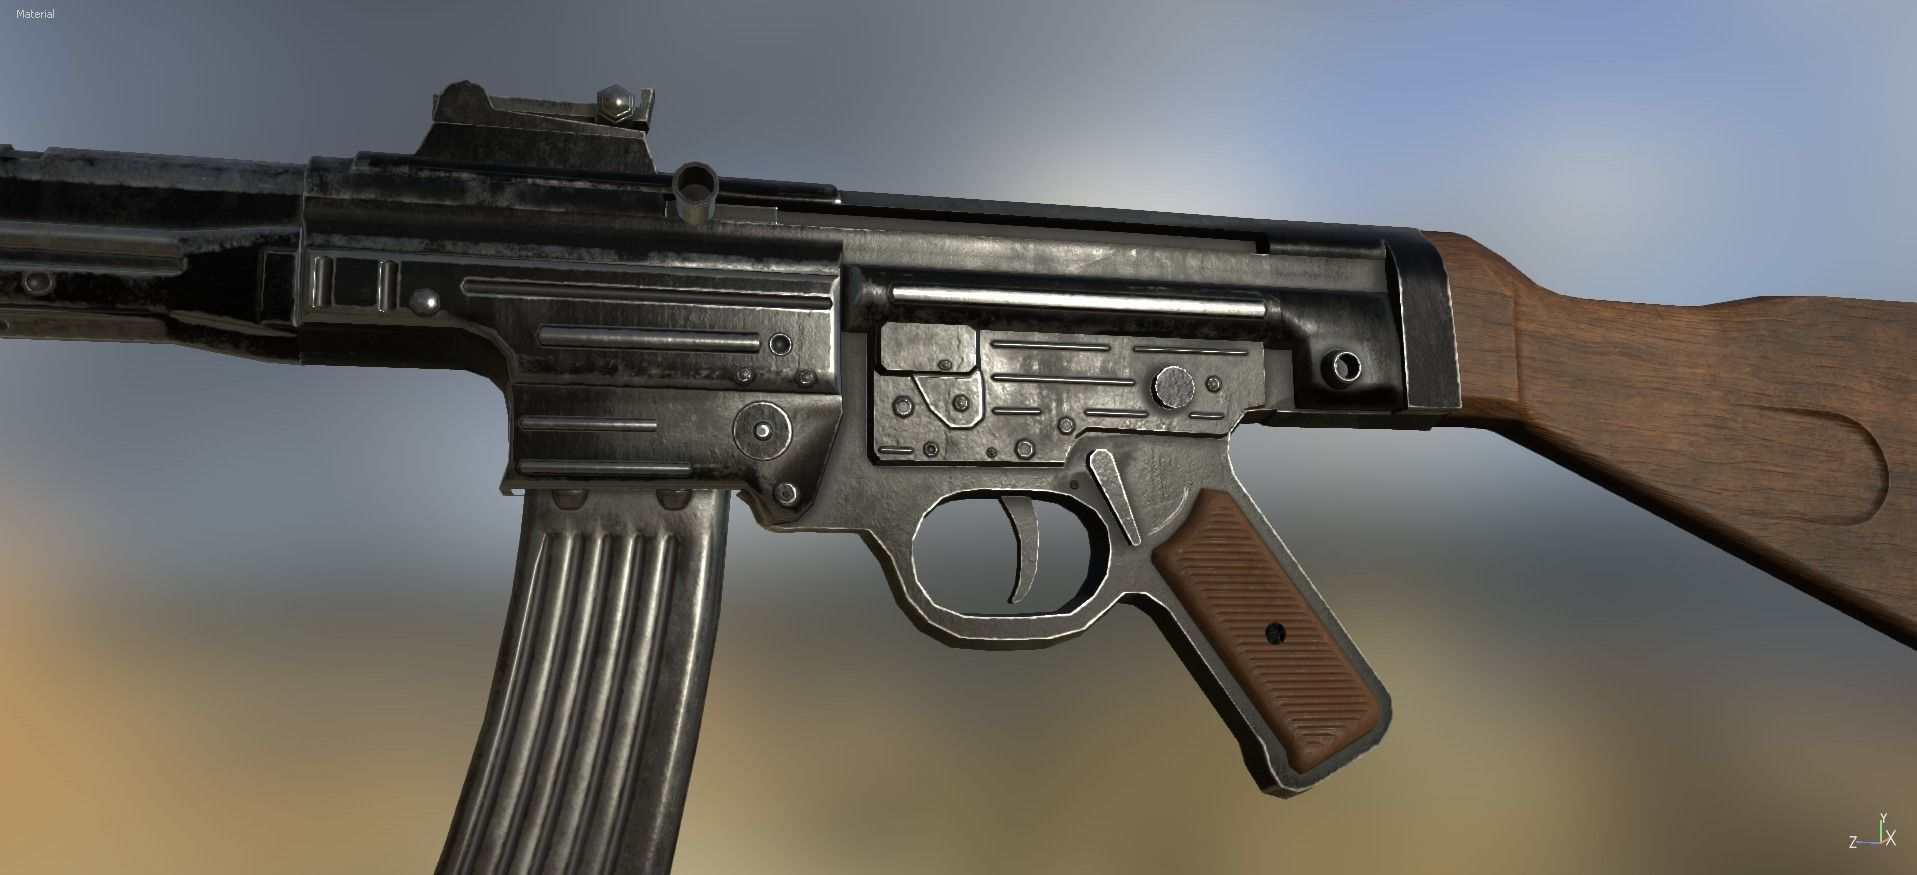 Nazi Germany's Sturmgewehr-44: The Assault Rifle That Started